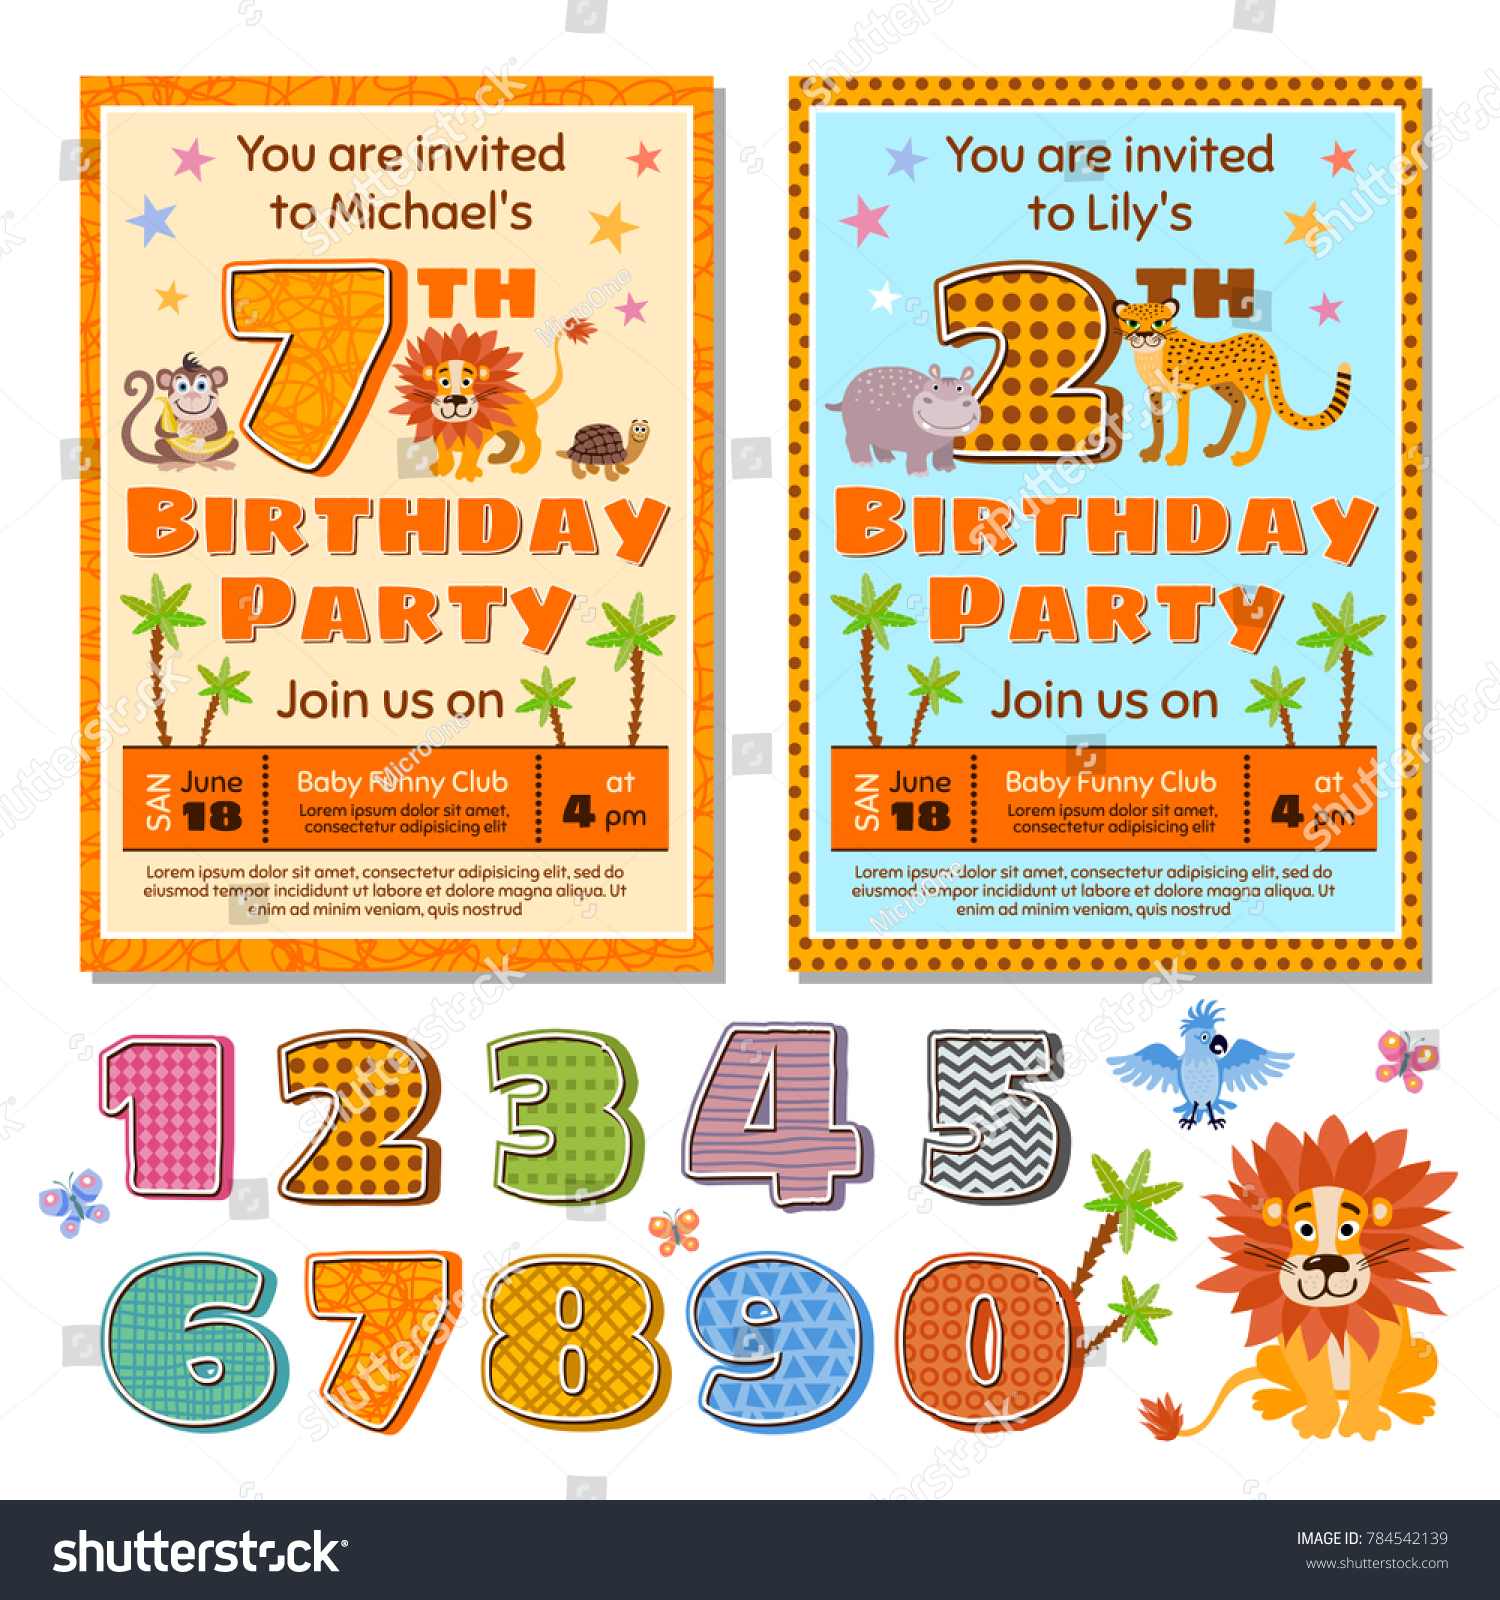 Children Birthday Party Invitation Card Template Stock Illustration ...